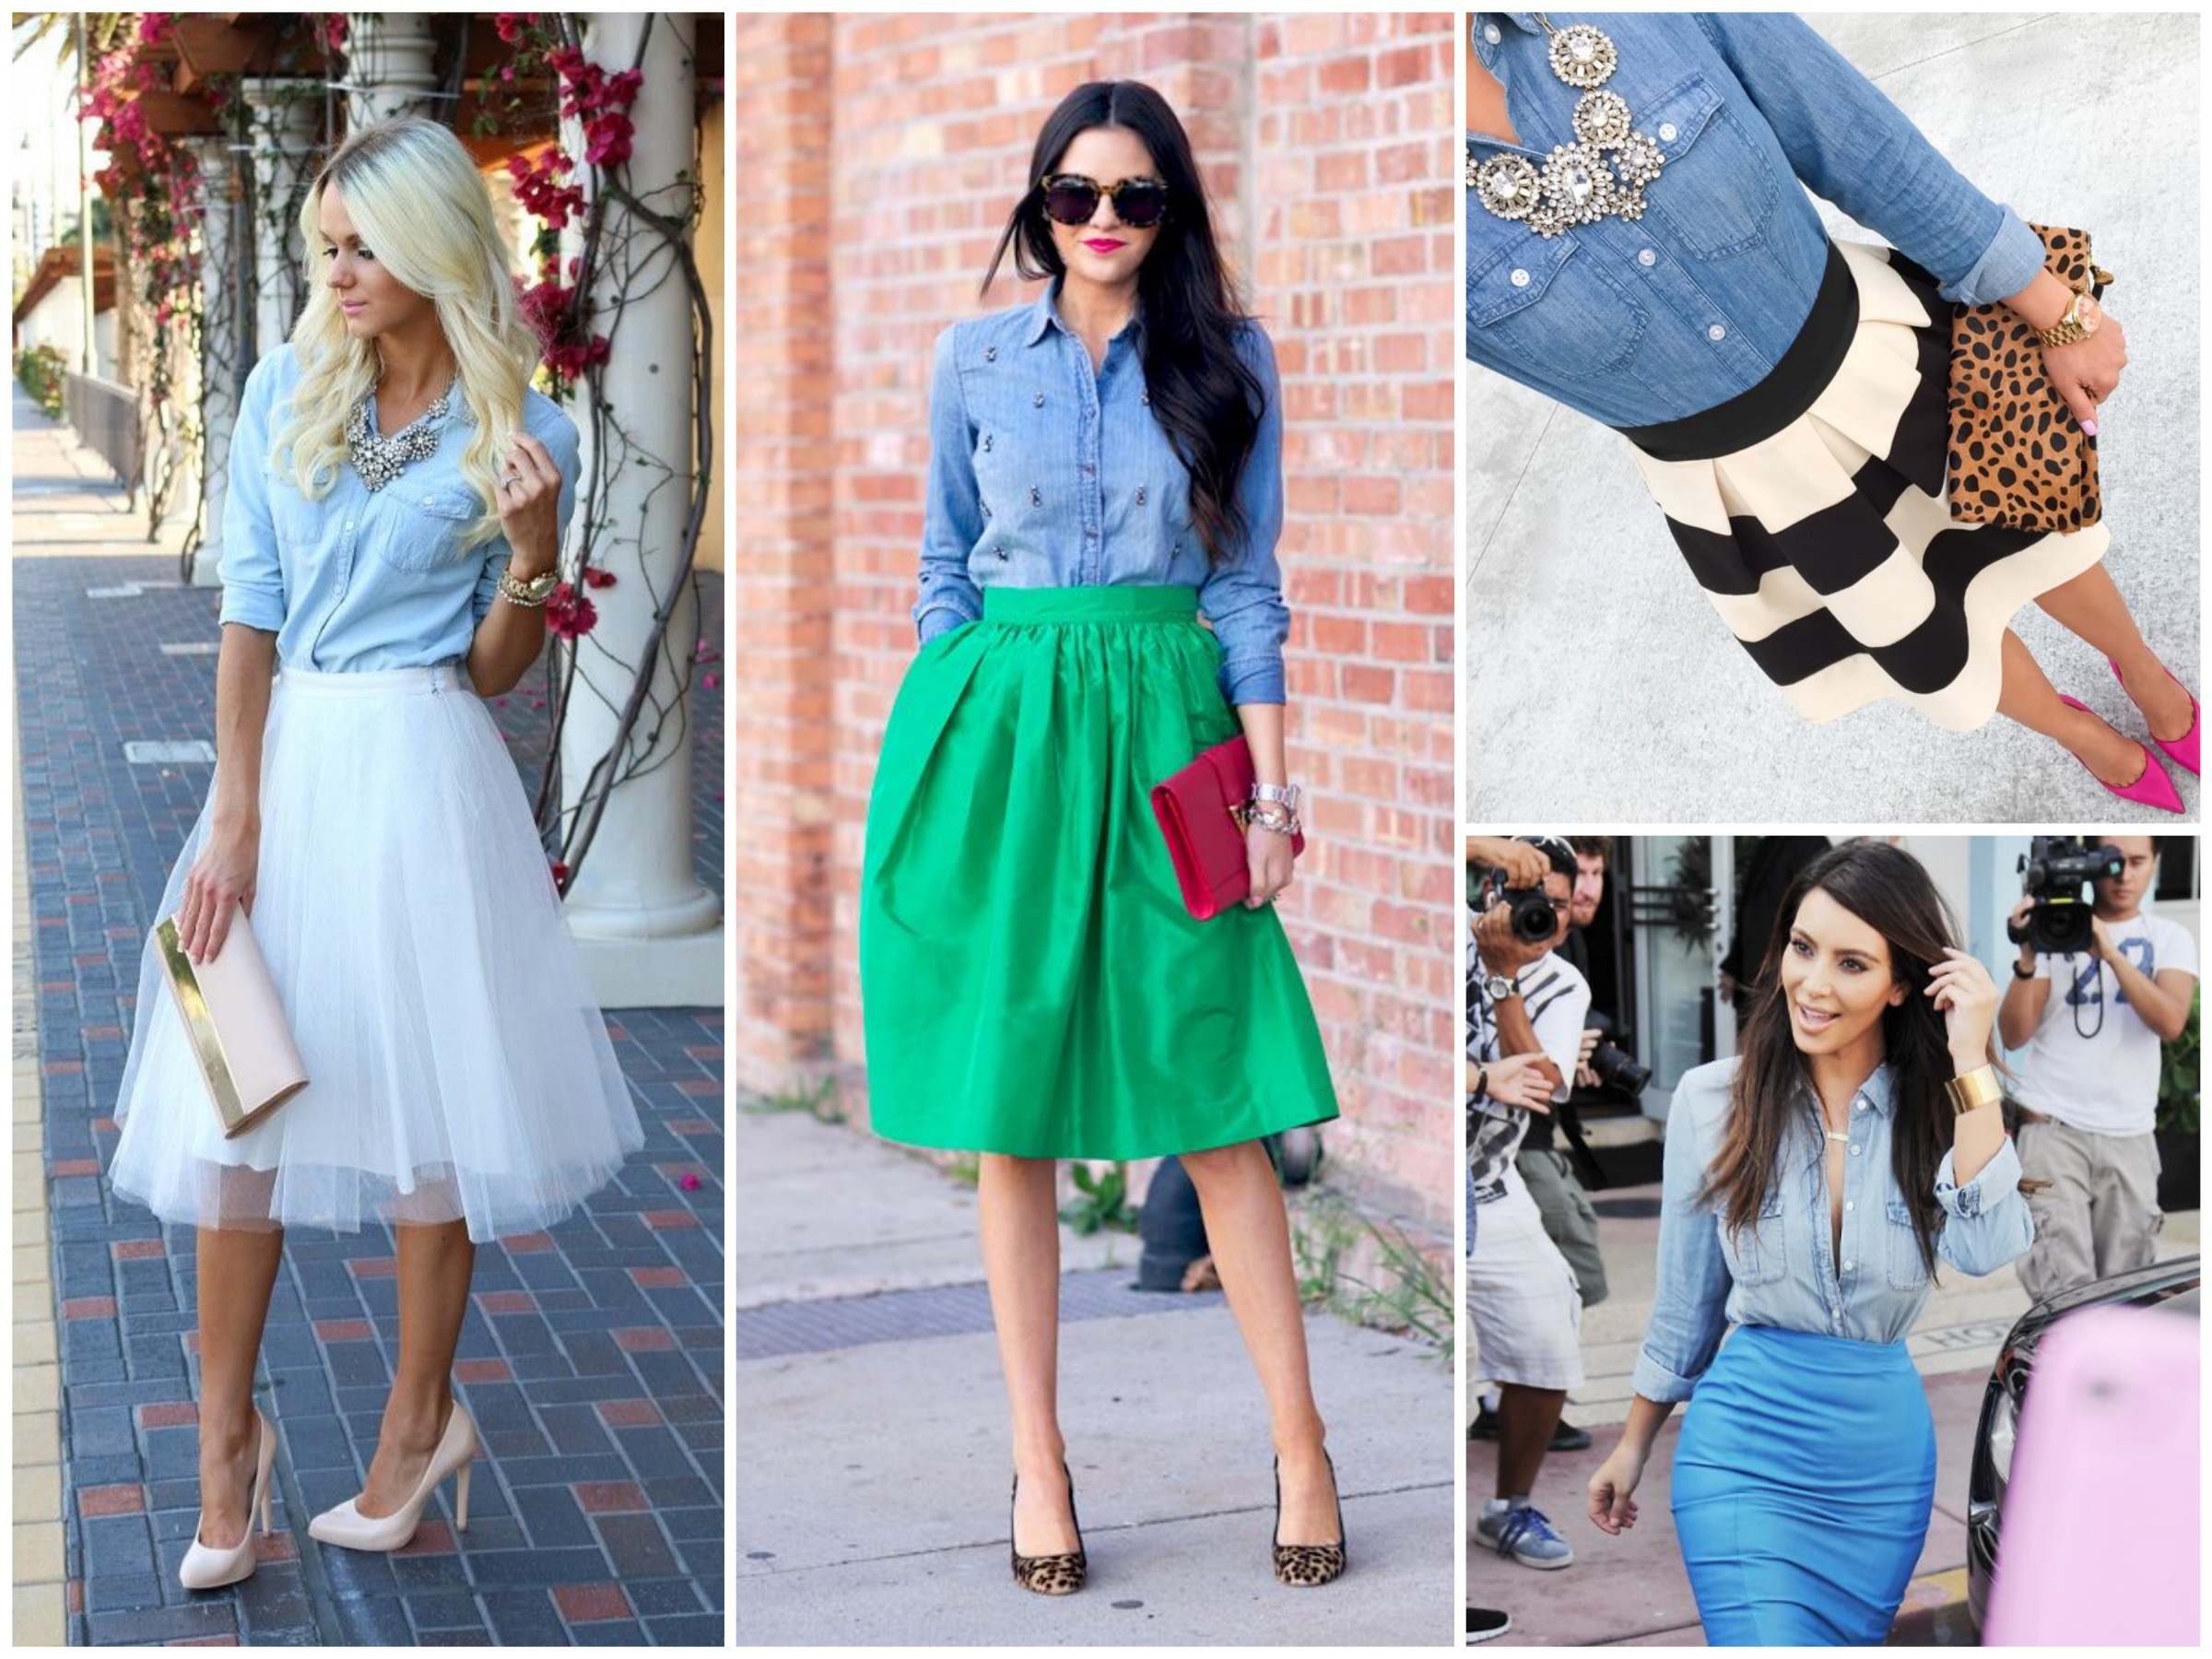 Pair your chambray shirt with a statement skirt